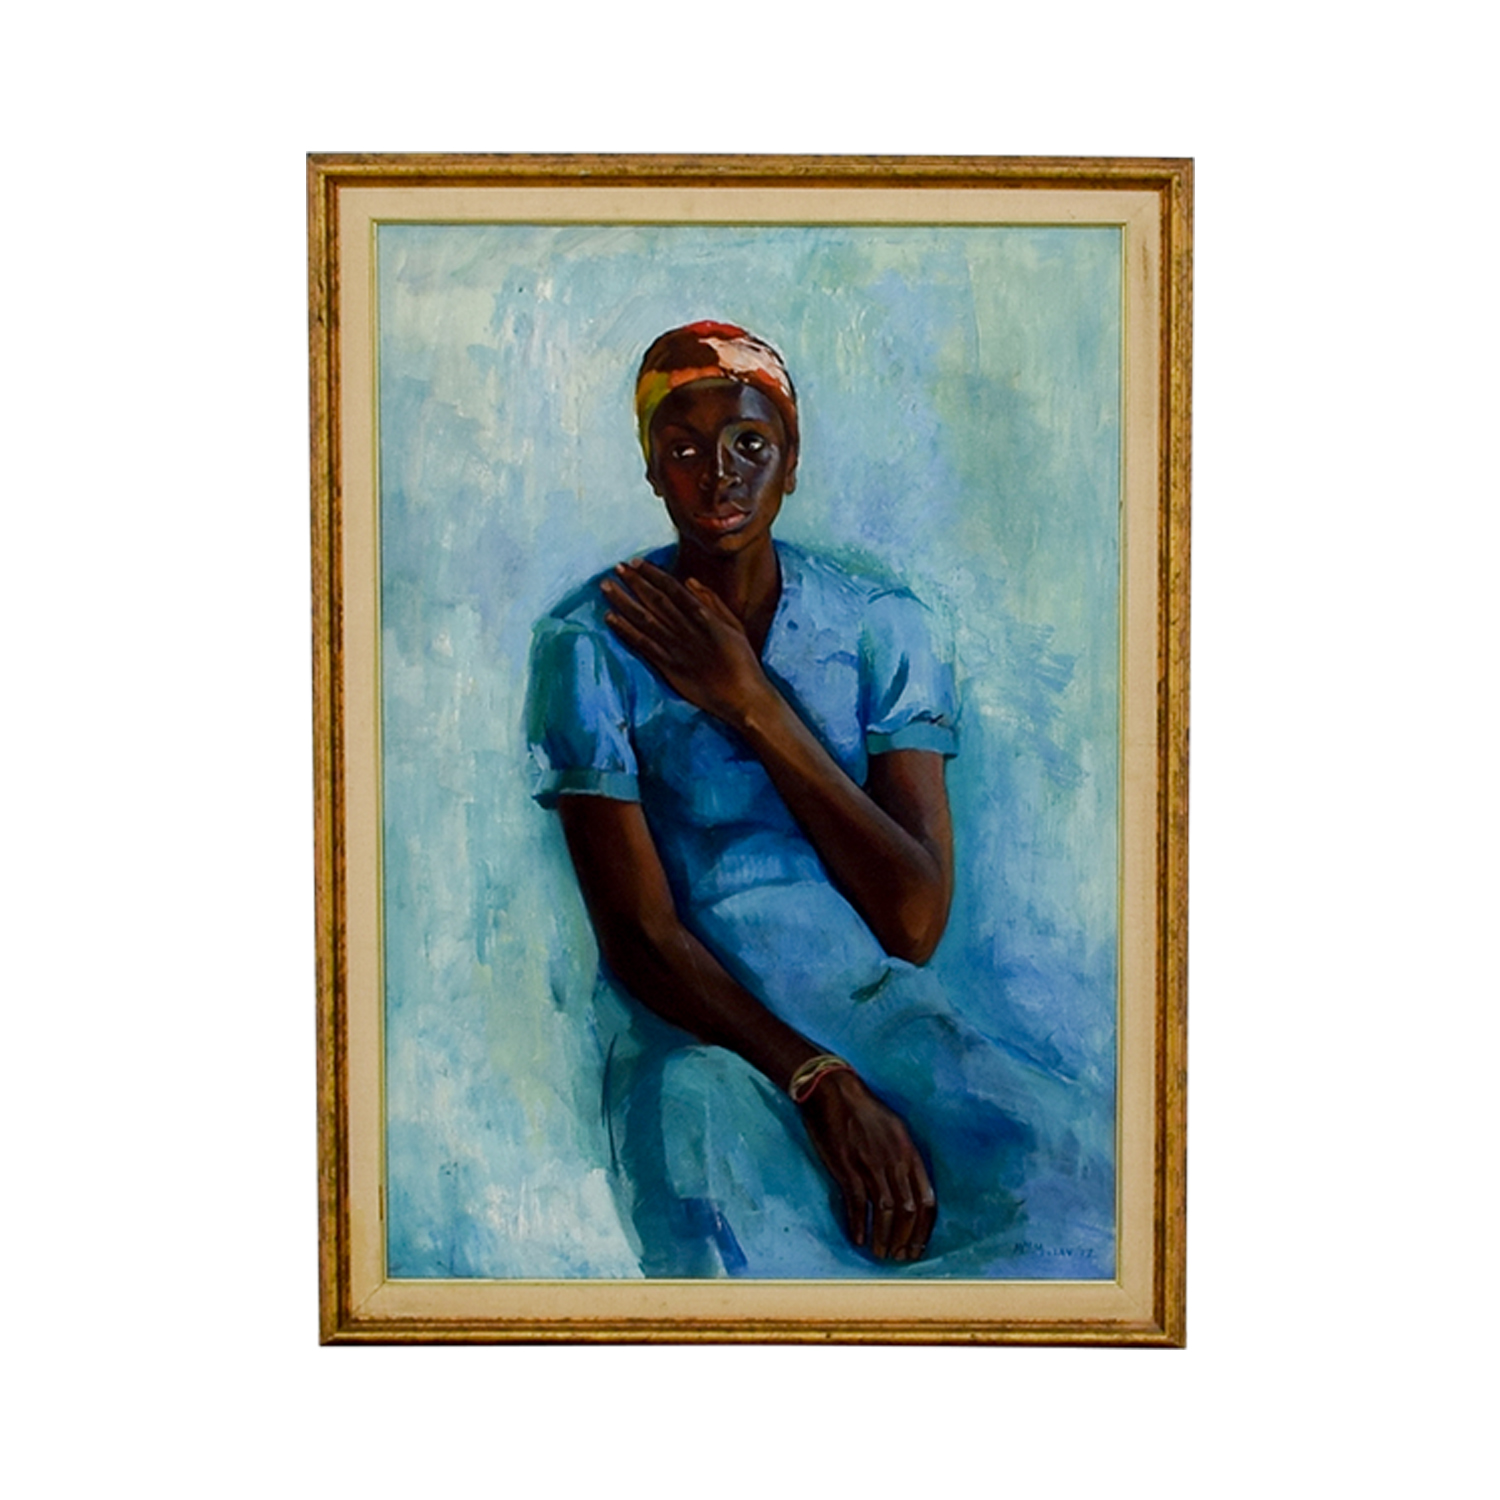 Woman in Blue Framed Print dimensions